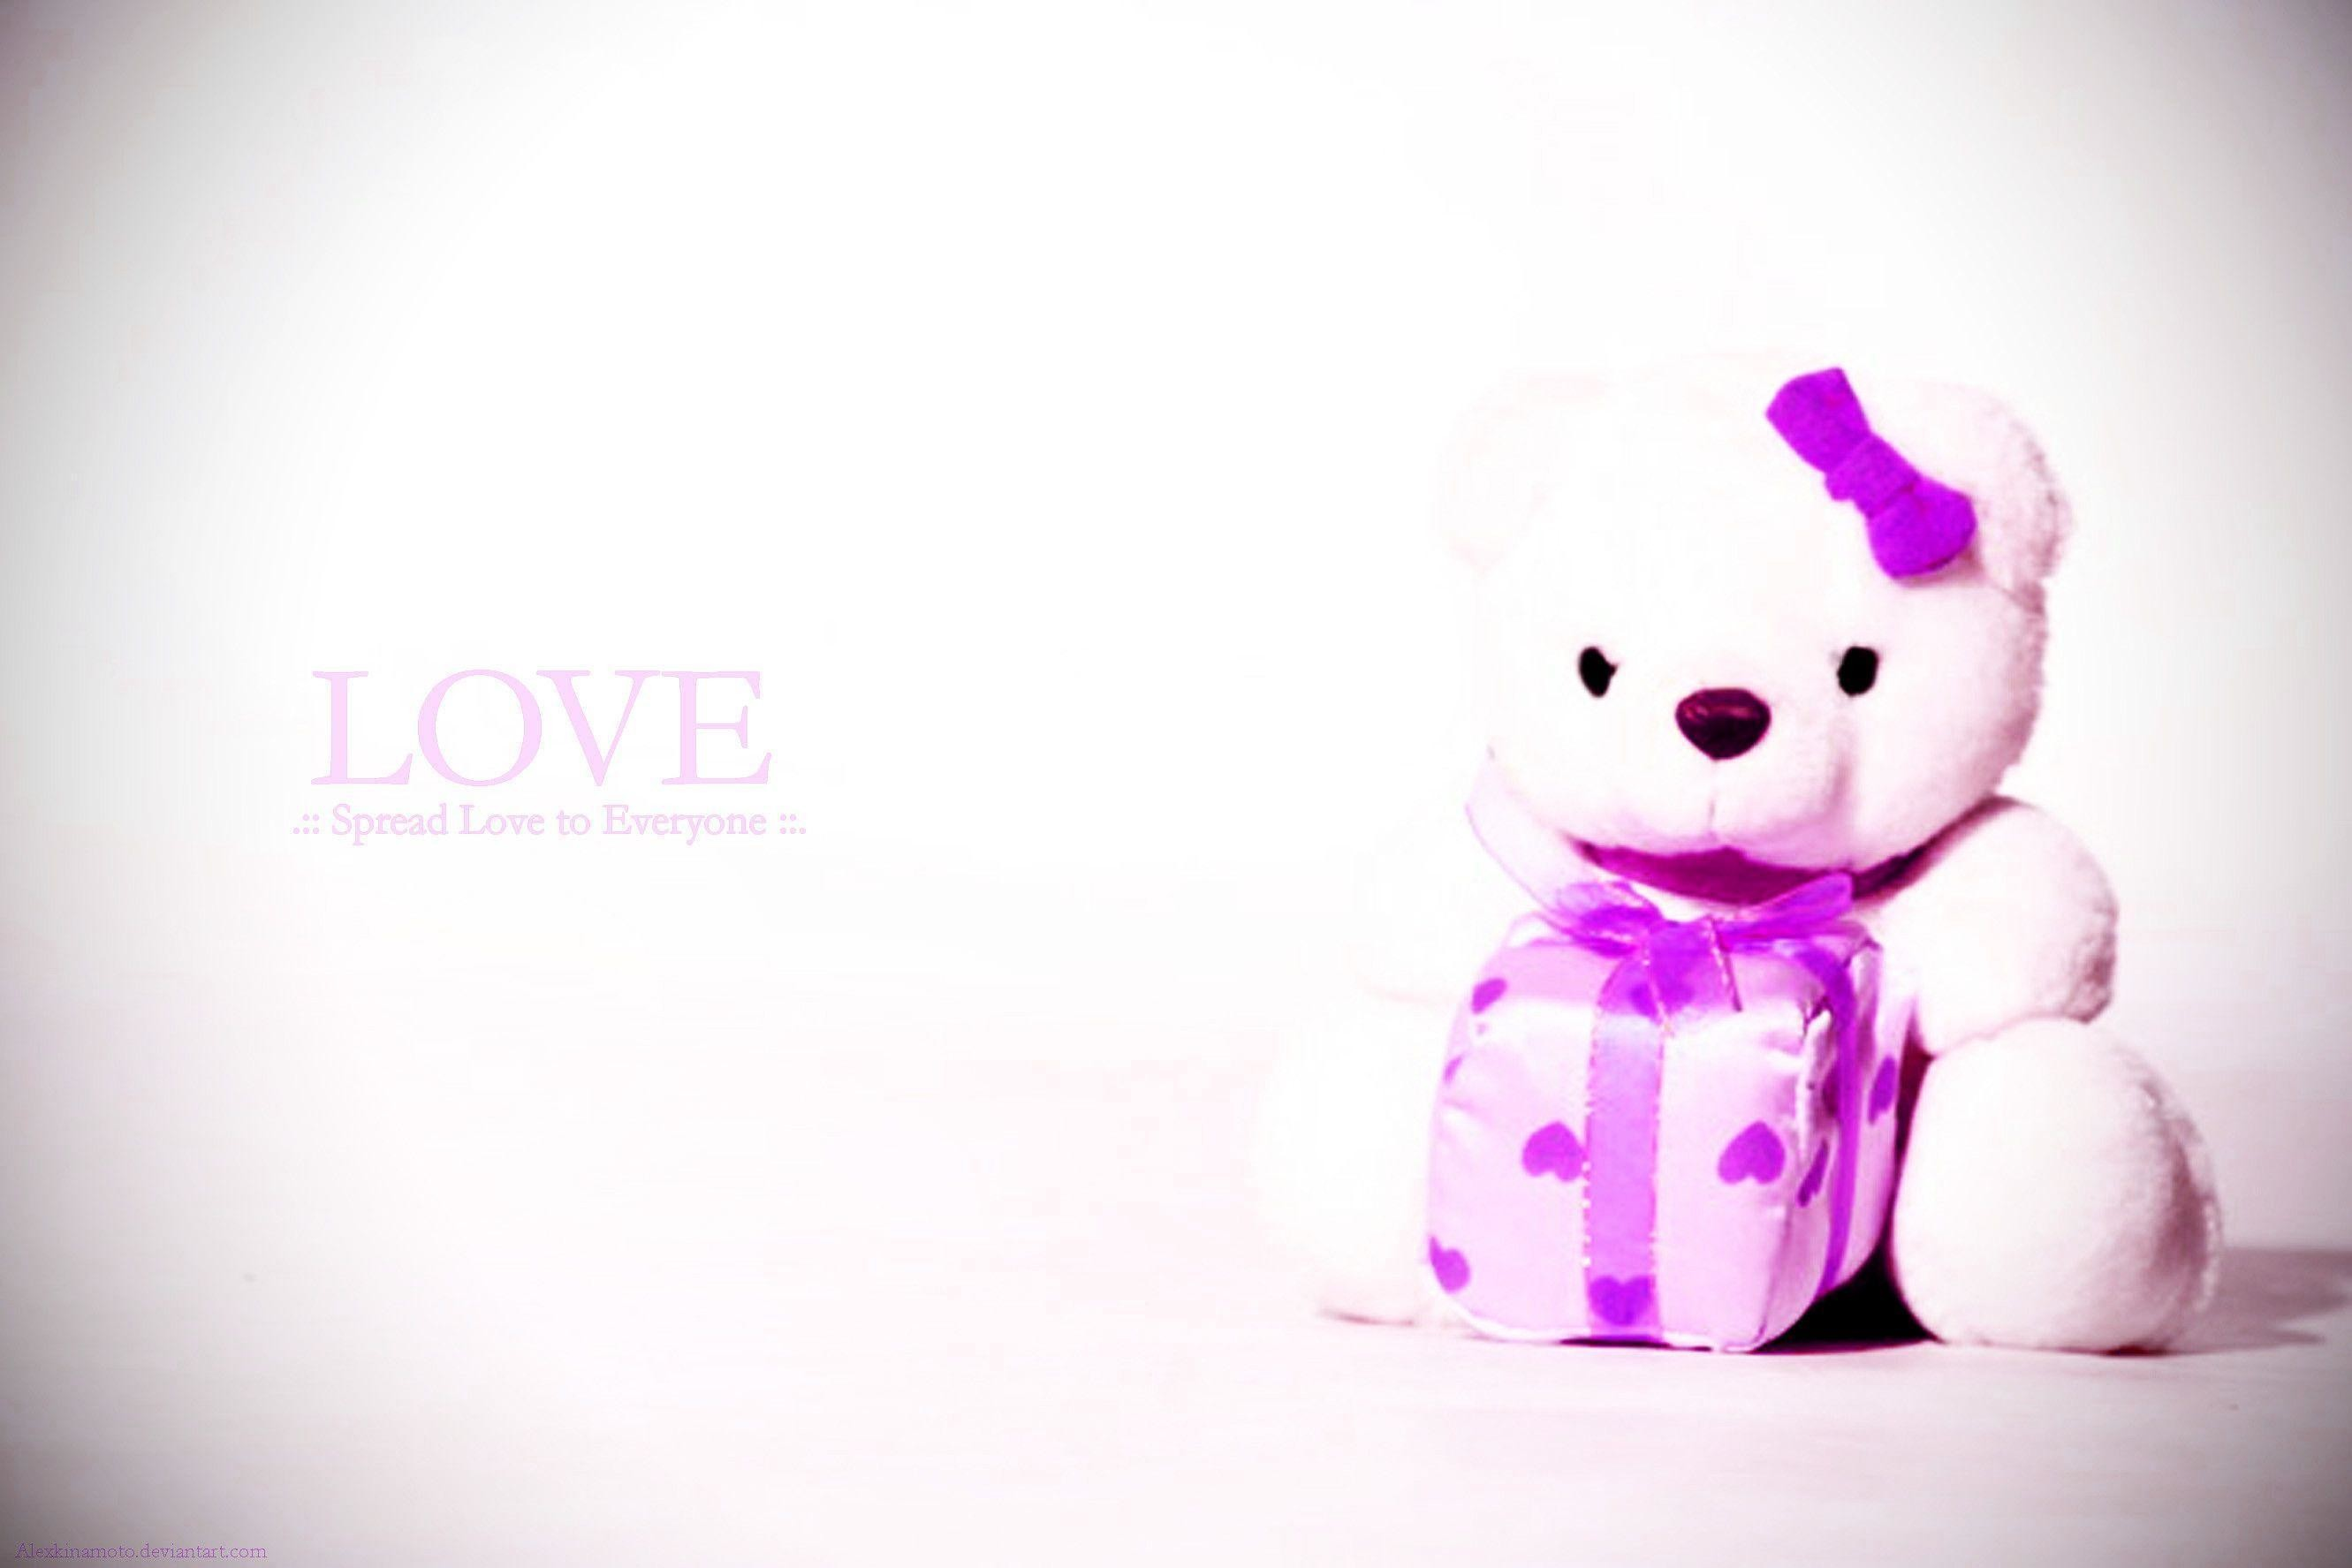 Cute teddy bear and love wallpapers download best hd wallpaper teddy bear background source cute teddy bear wallpaper 50 images voltagebd Images